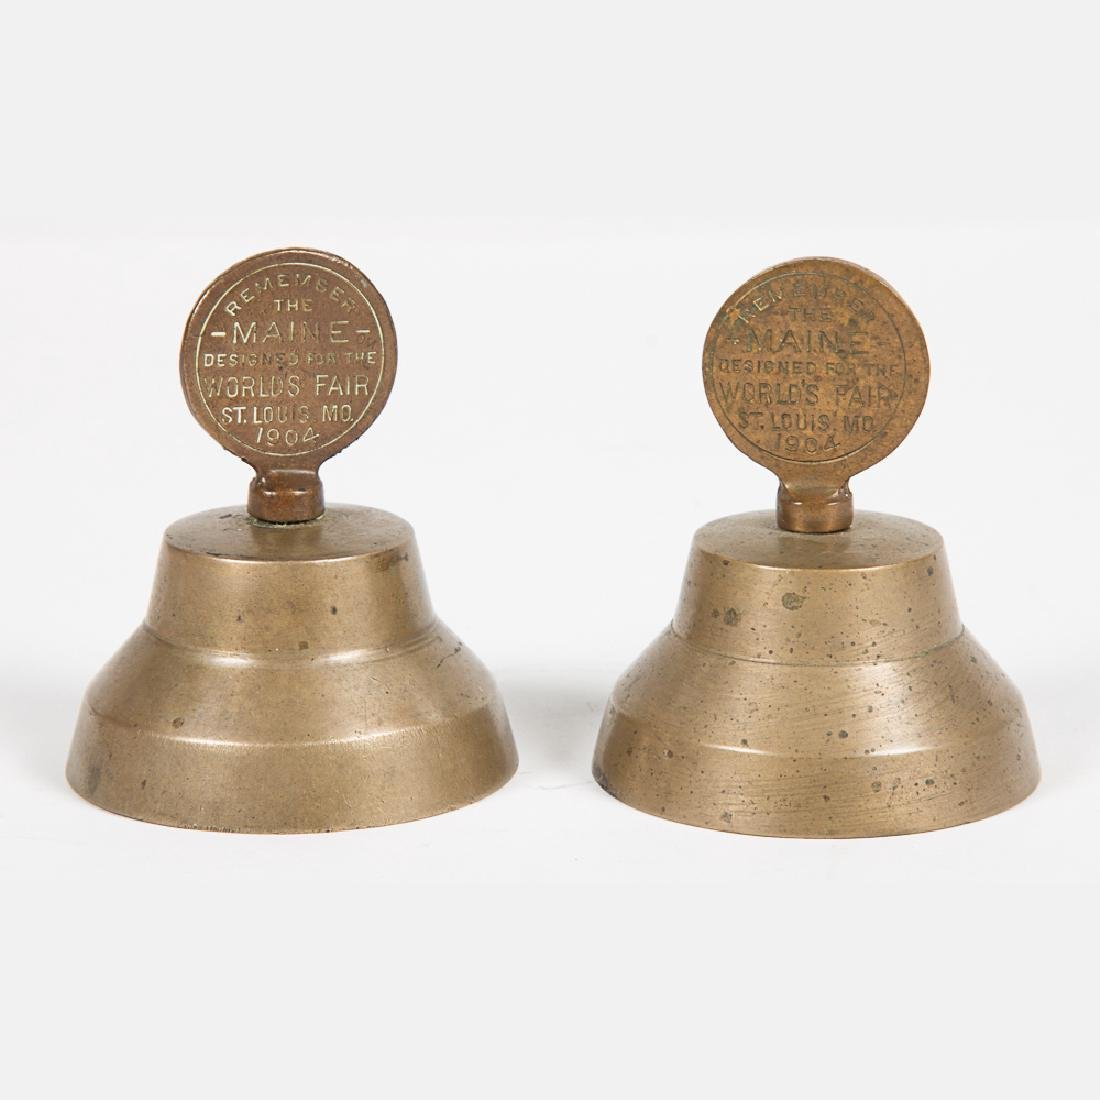 Two 'Remember the Maine' Brass Bells from the Louisiana